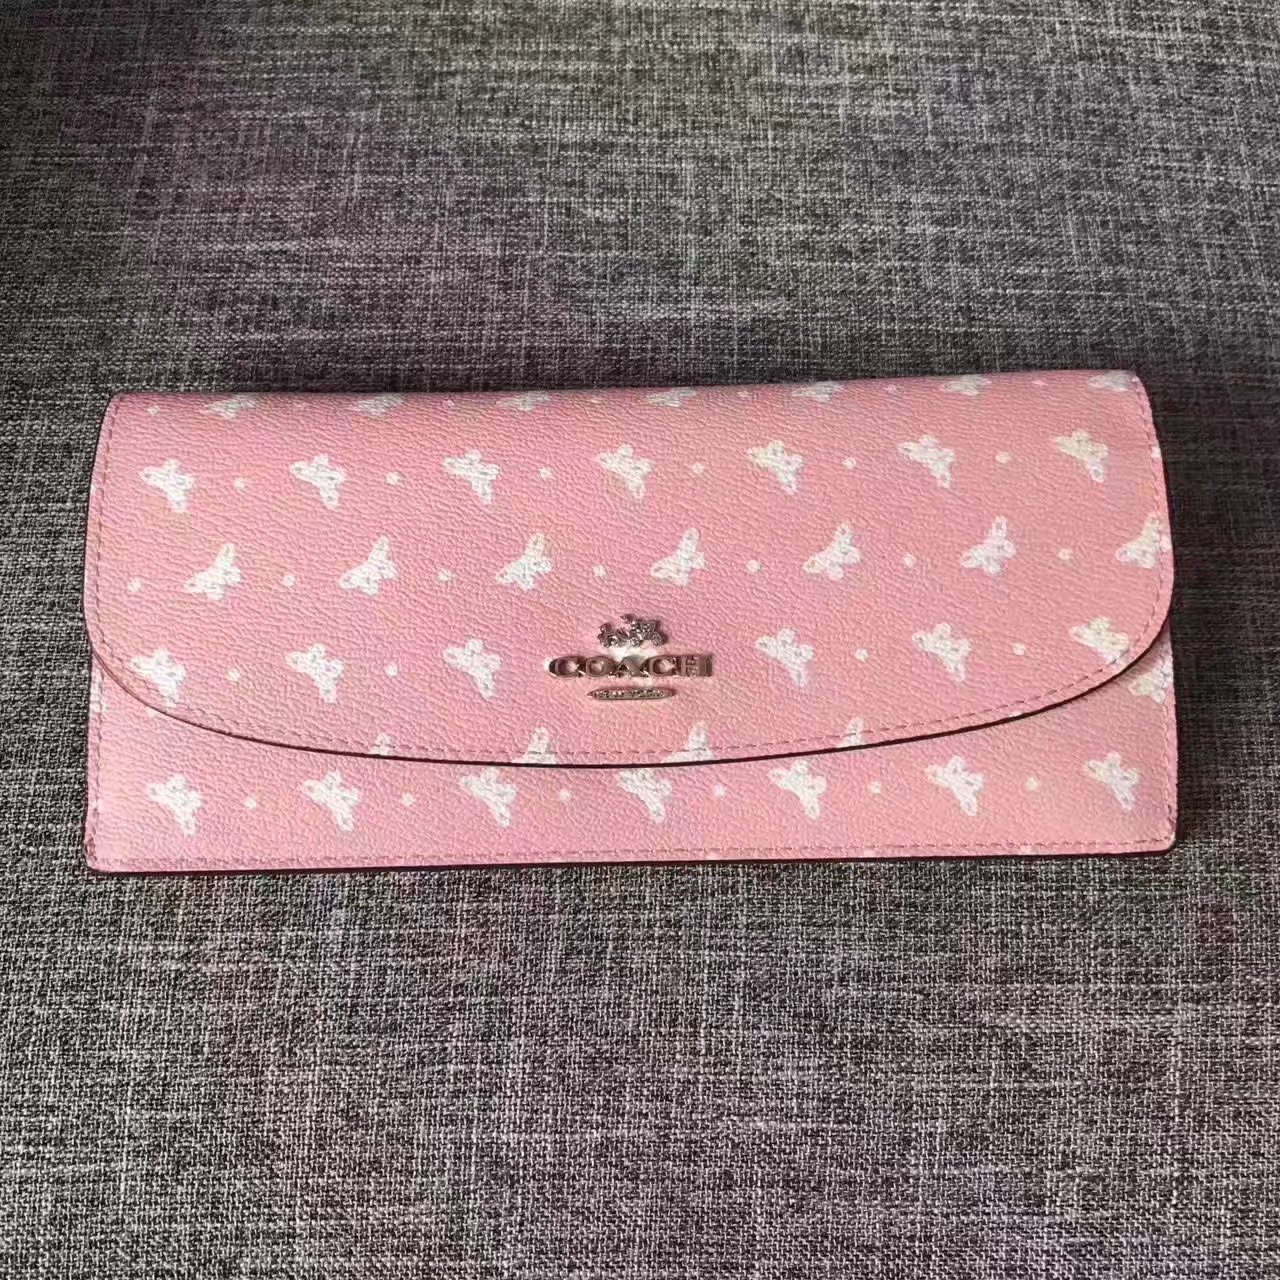 Coach Women Butterfly Print Long Flap Wallet Pink